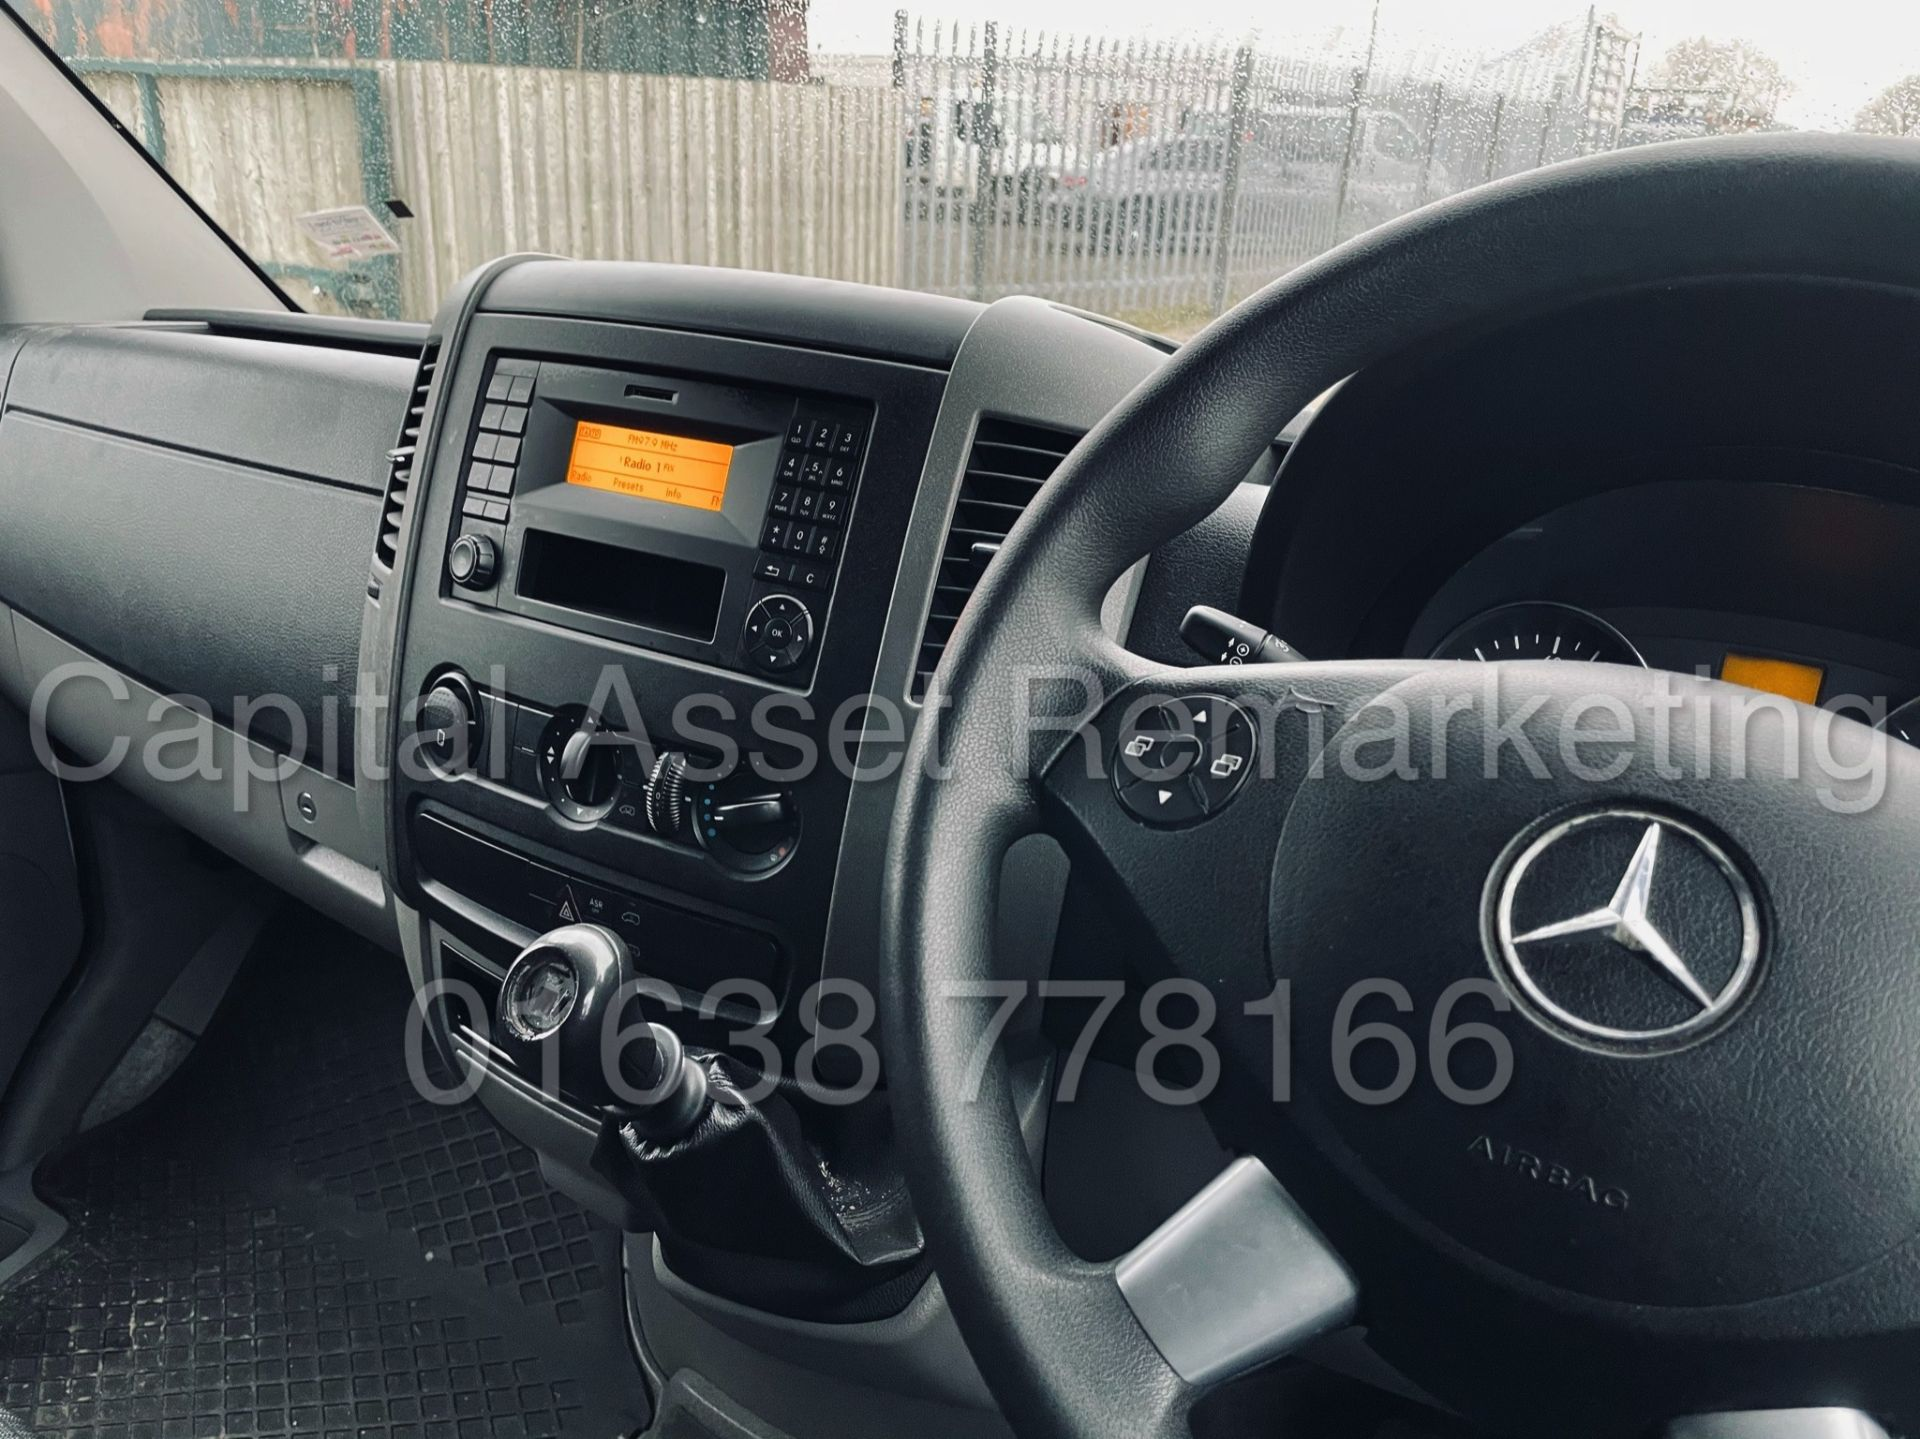 (On Sale) MERCEDES-BENZ SPRINTER 314 CDI *LWB HI-ROOF* (67 REG - EURO 6) '140 BHP-6 SPEED' (1 OWNER) - Image 29 of 37